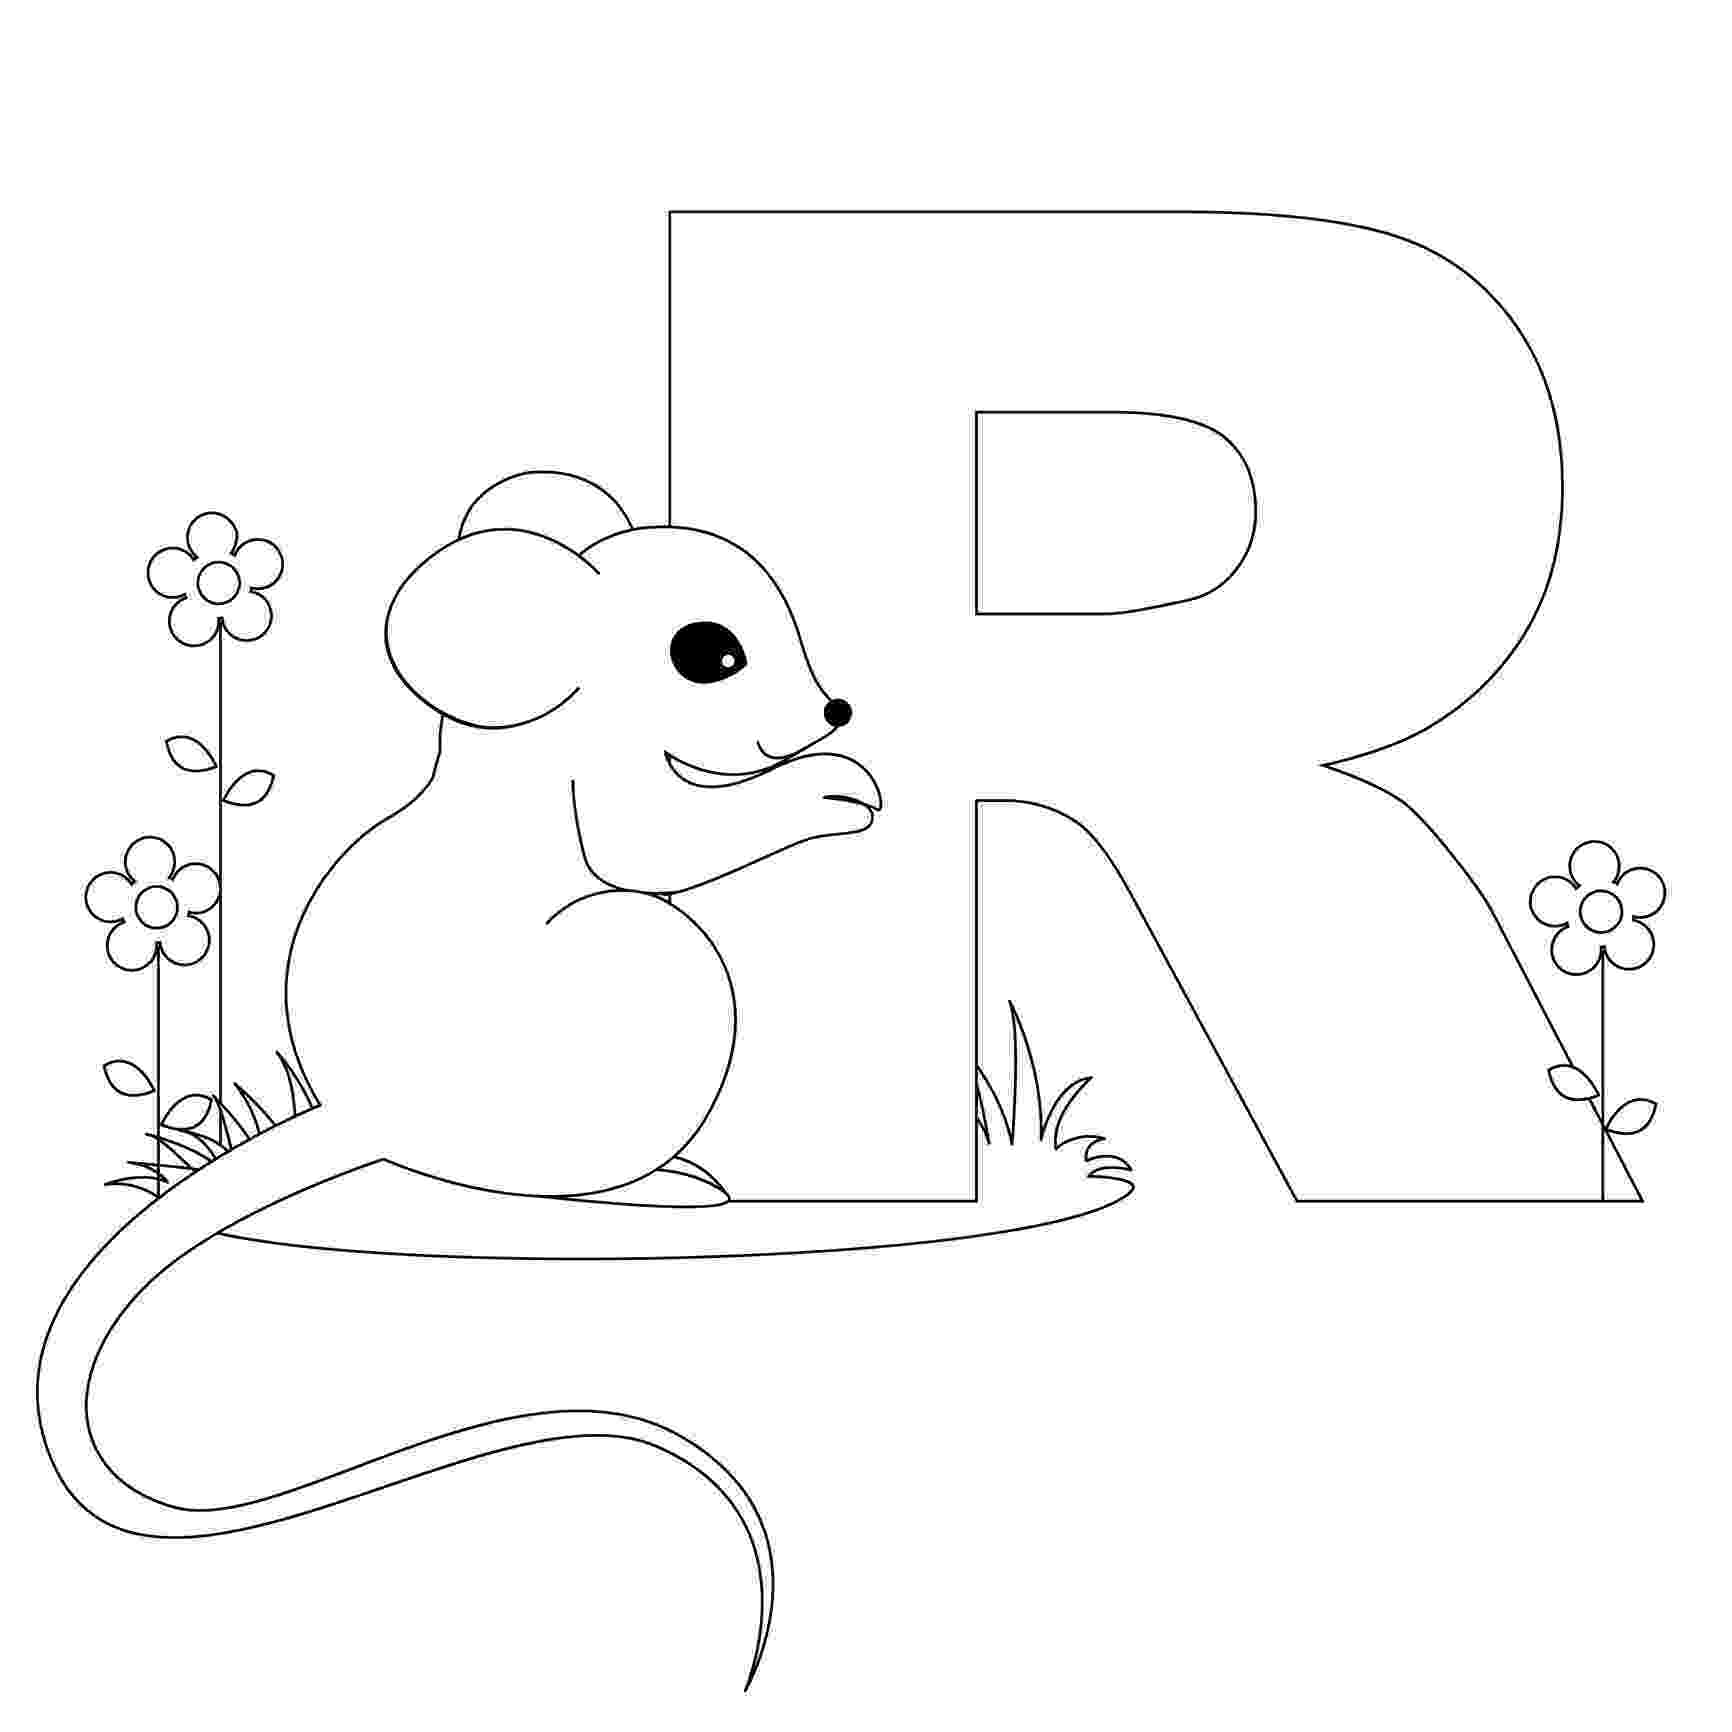 childrens colouring pages alphabet free printable alphabet coloring pages for kids best alphabet colouring childrens pages